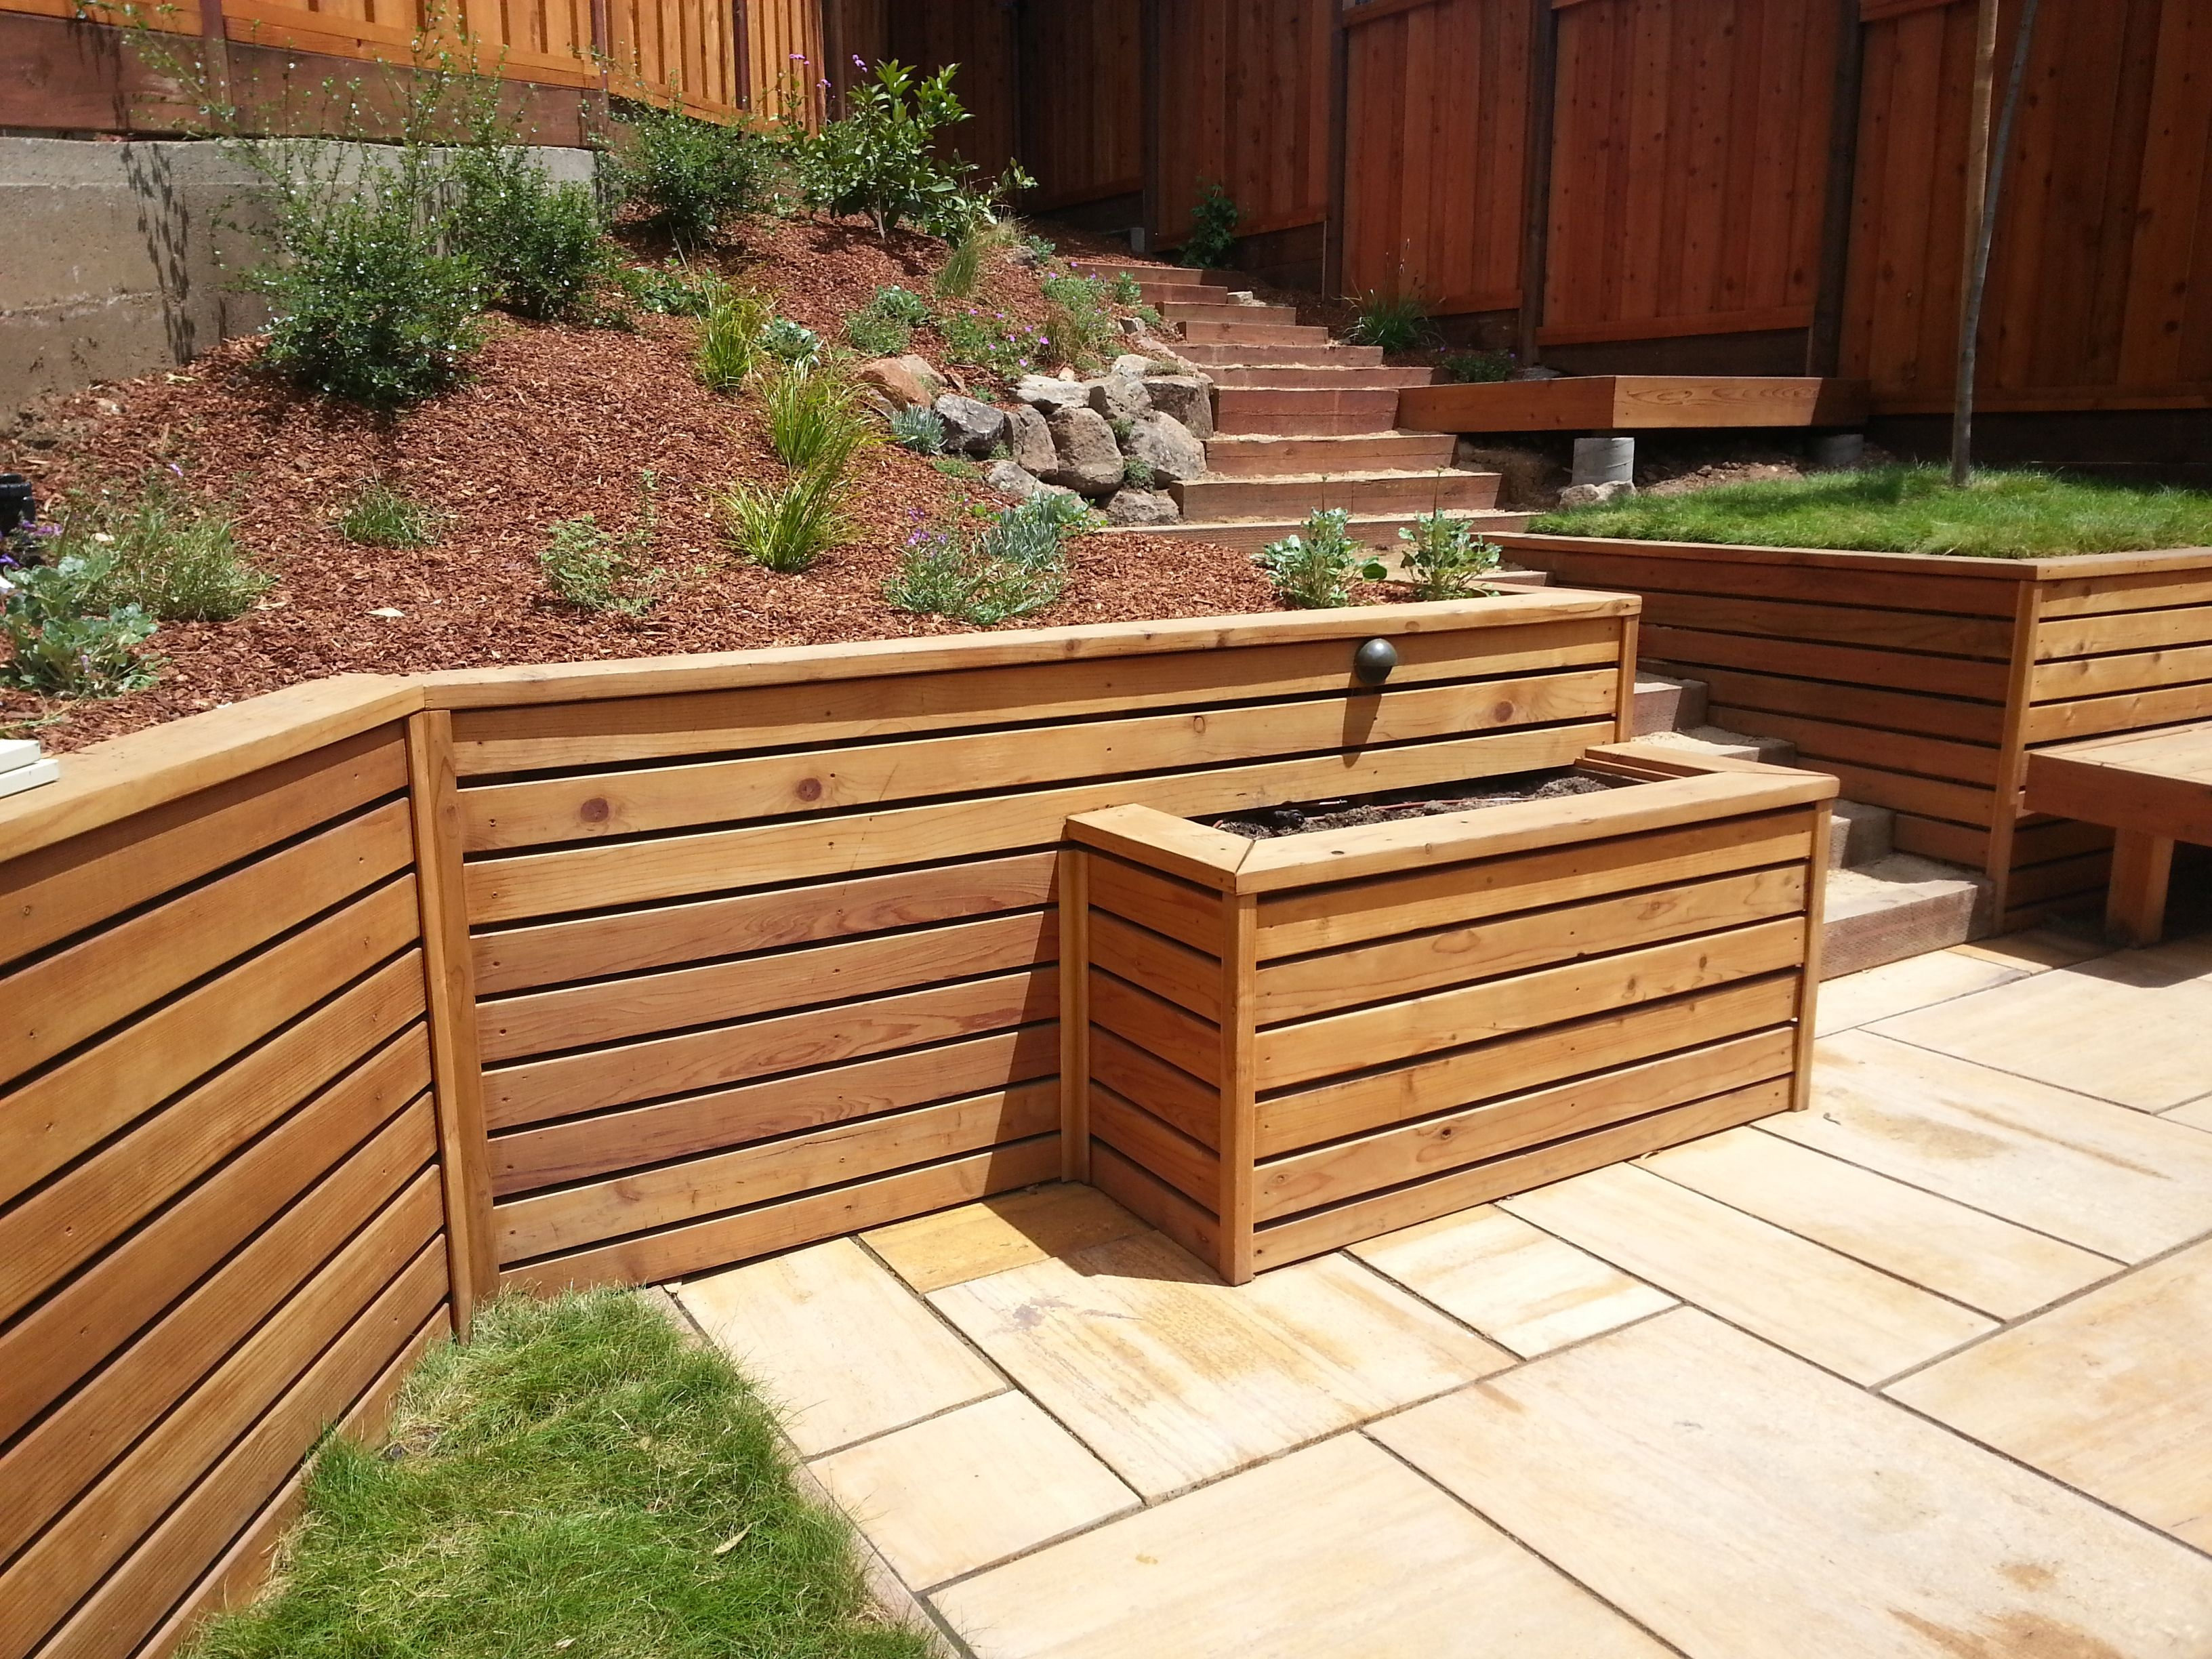 Pressure Treated Retaining Wall With Horizontal Redwood Facing Includes Planter Box And Sloped Backyard Landscaping Garden Retaining Wall Wood Retaining Wall